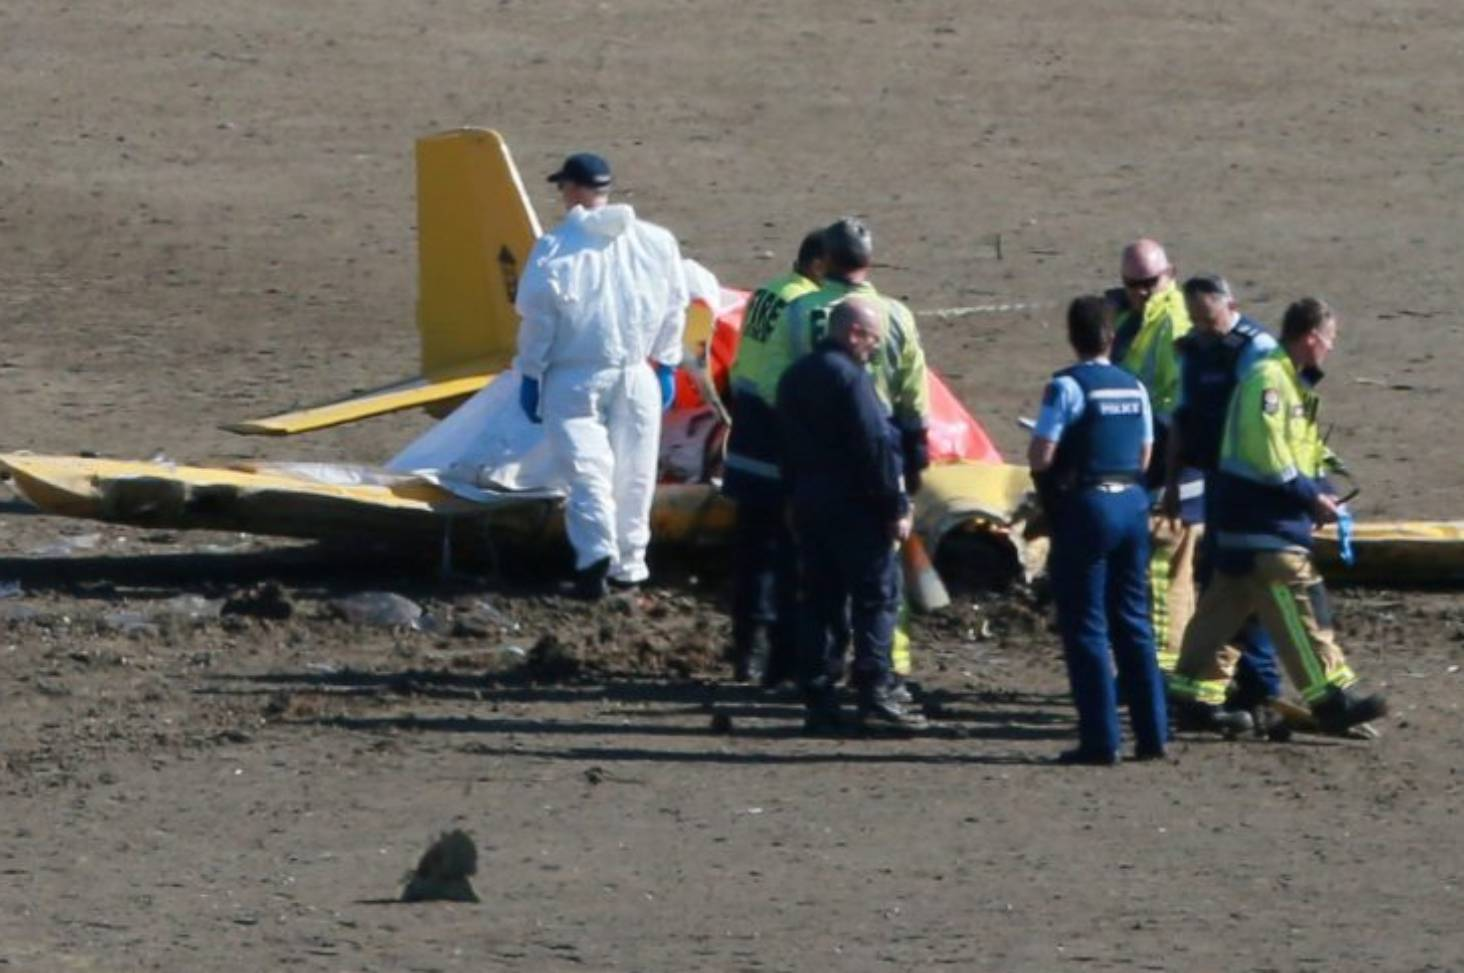 267eaab049 Civil aviation authority to investigate fatal plane crash